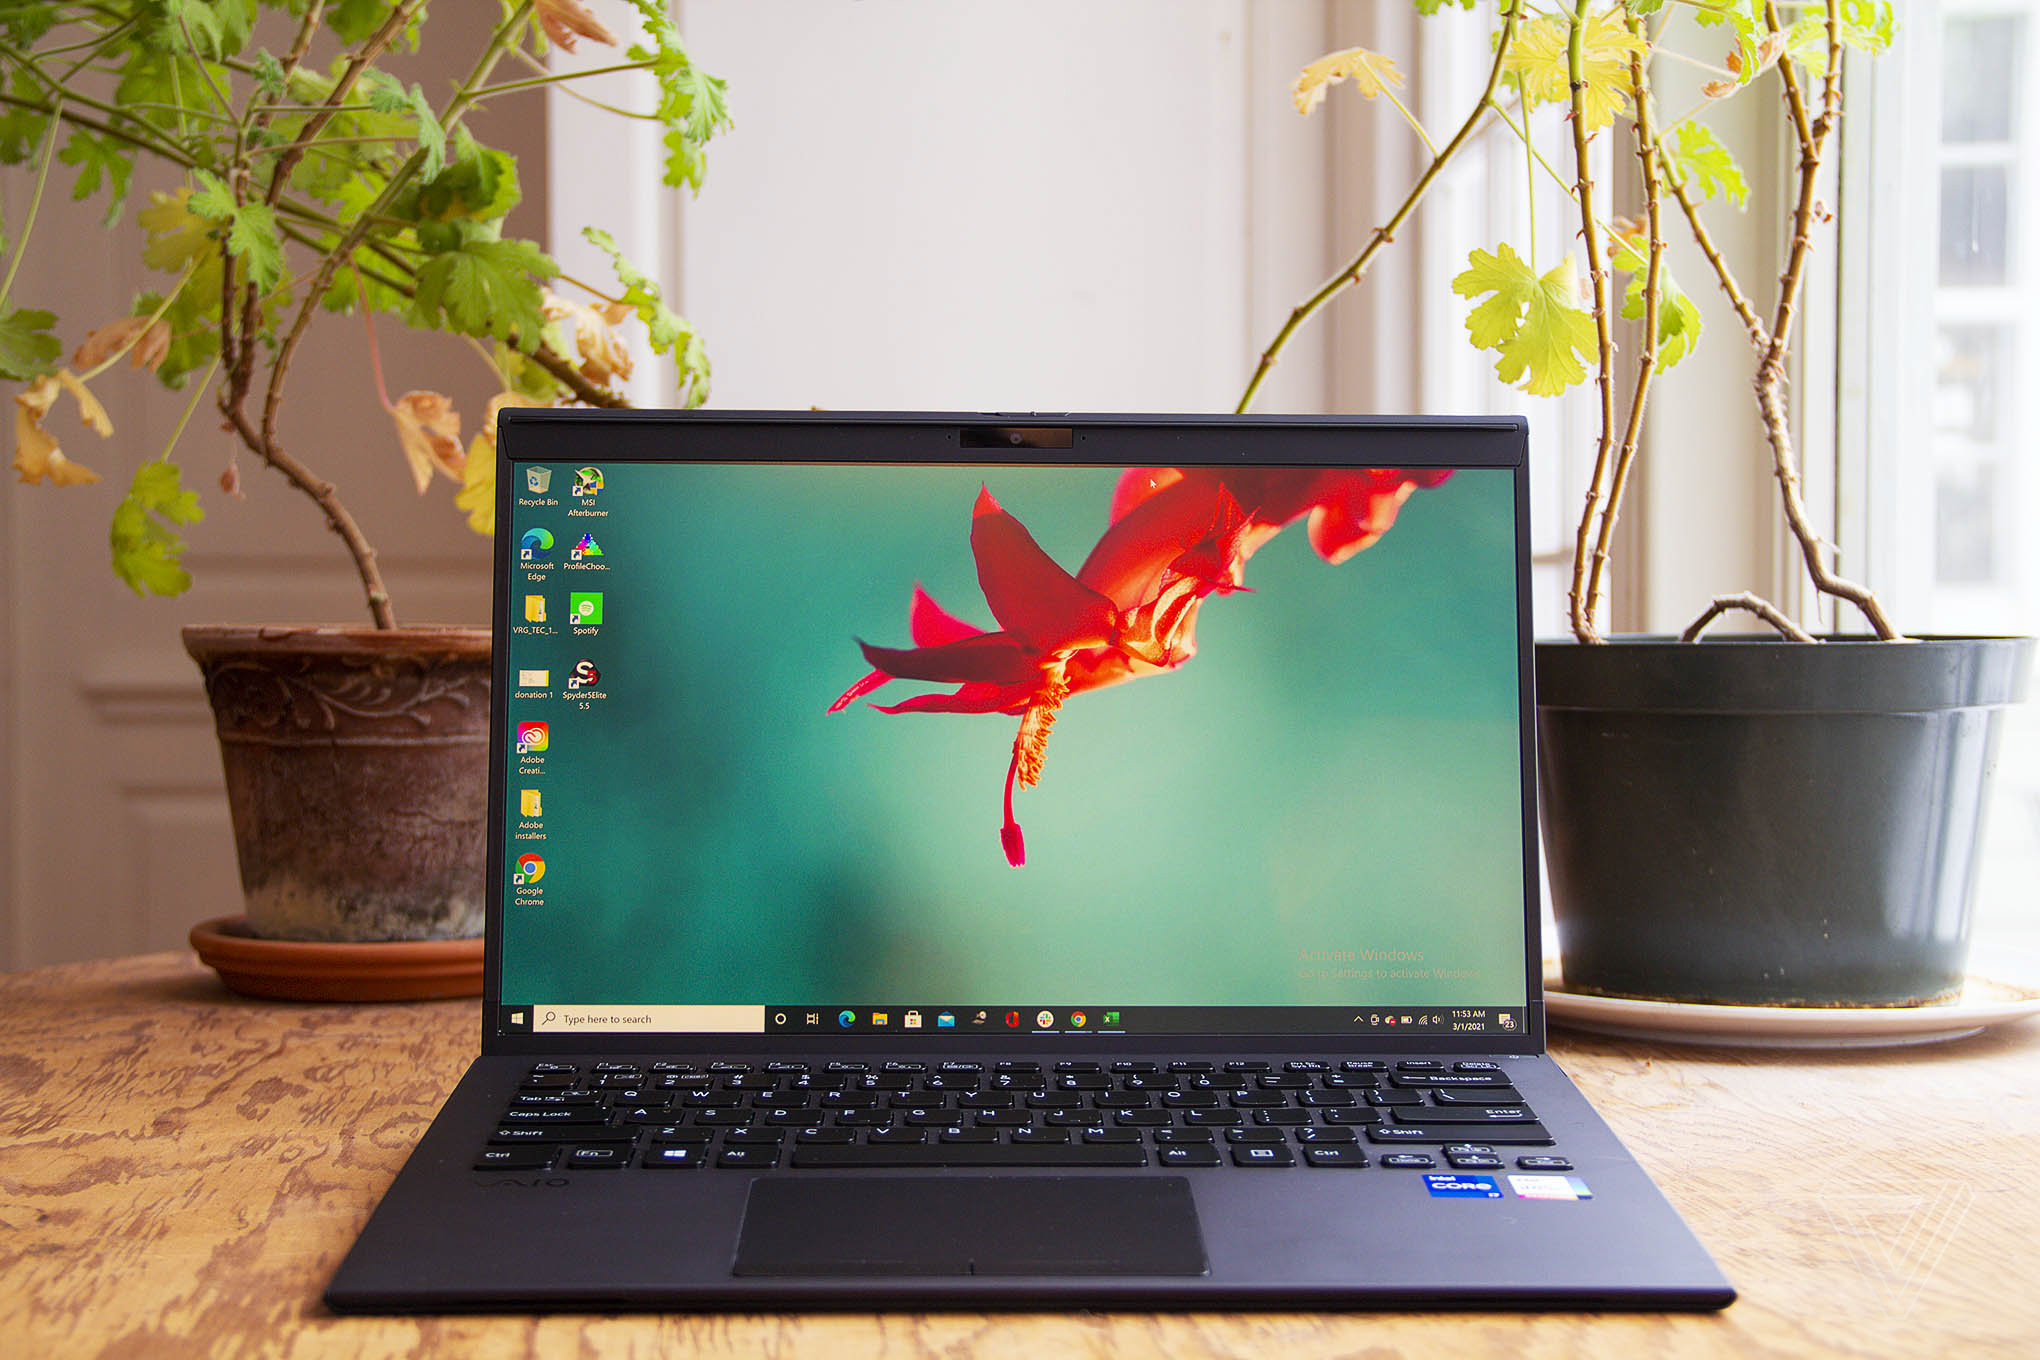 The Vaio Z laptop on a table with two plants in the background. The screen displays a red flower on a blue background.